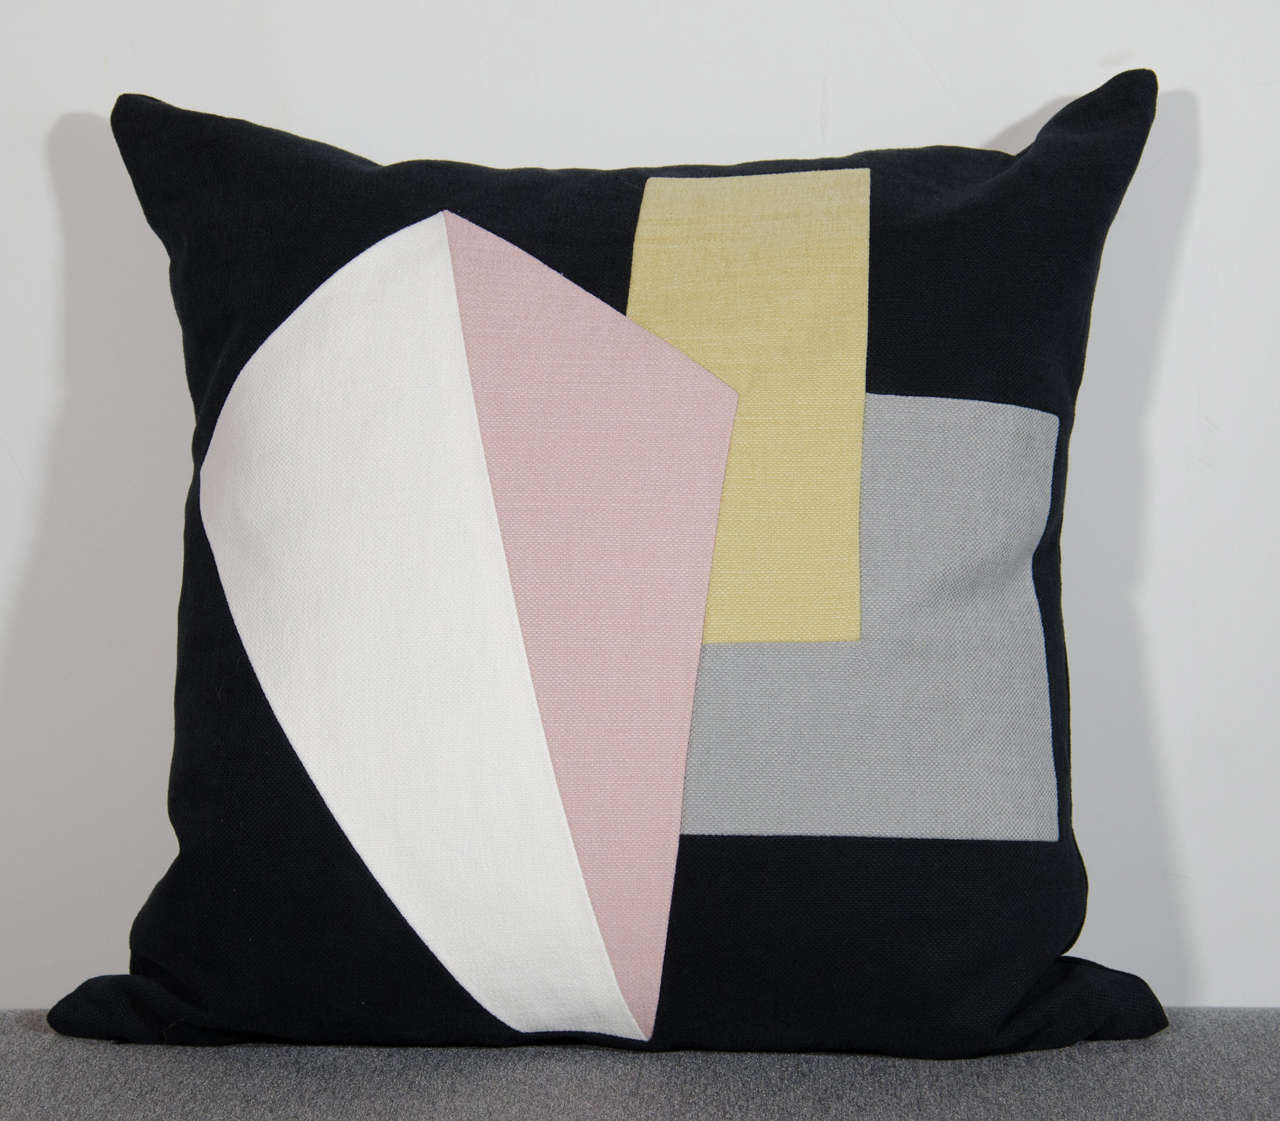 Mid-Century Inspired Architectural Pillow Black Collection by Arguello Casa For Sale at 1stdibs